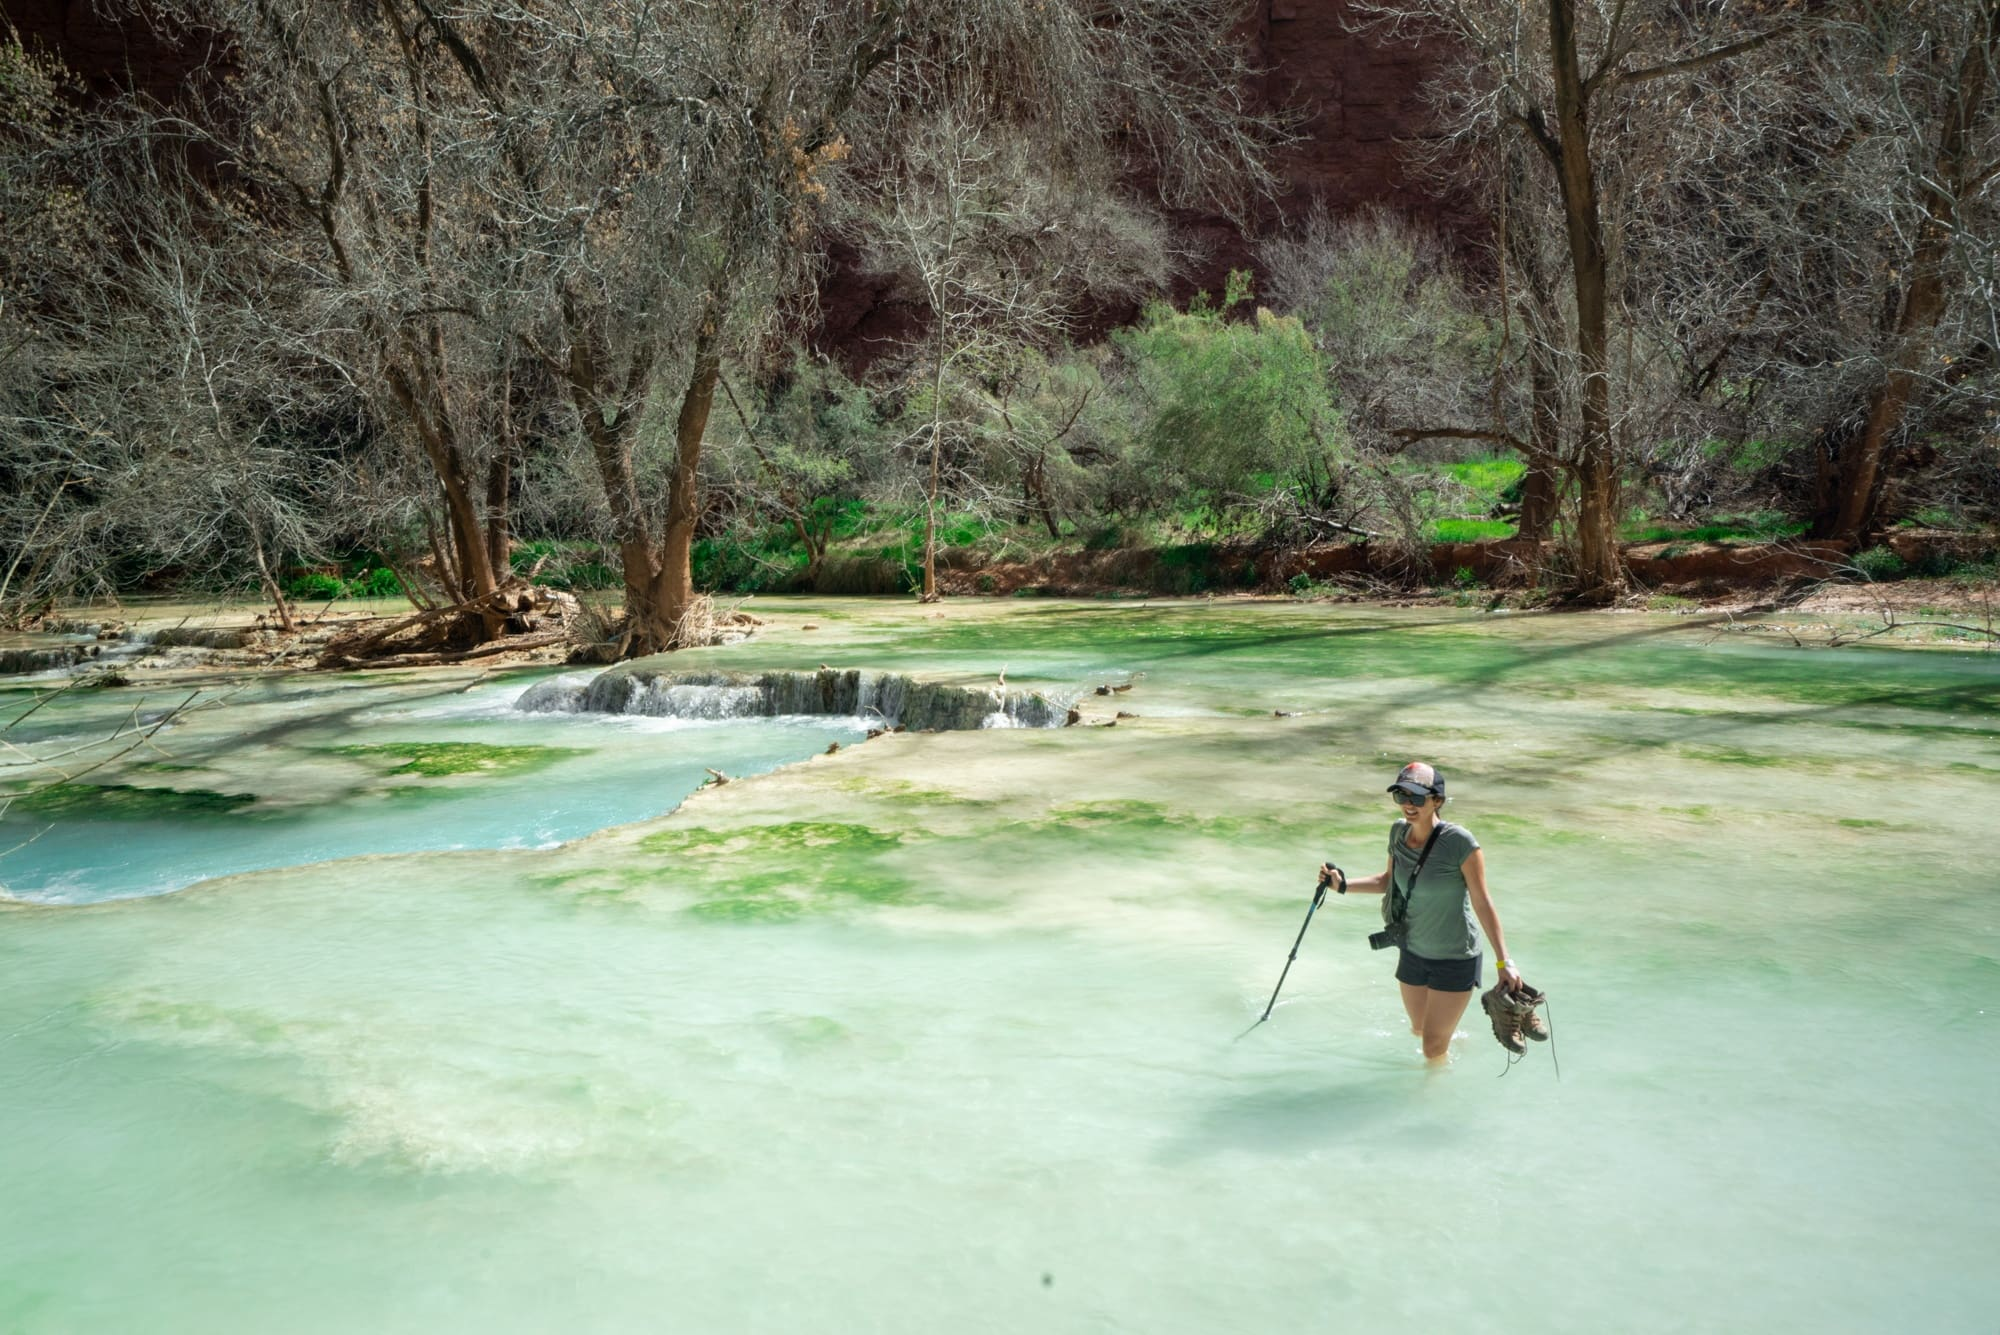 Hiking to Beaver Falls // Get inspired to visit Havasupai in Arizona! Here are my favorite Havasu Falls photos along with tips and advice for planning your backpacking trip.